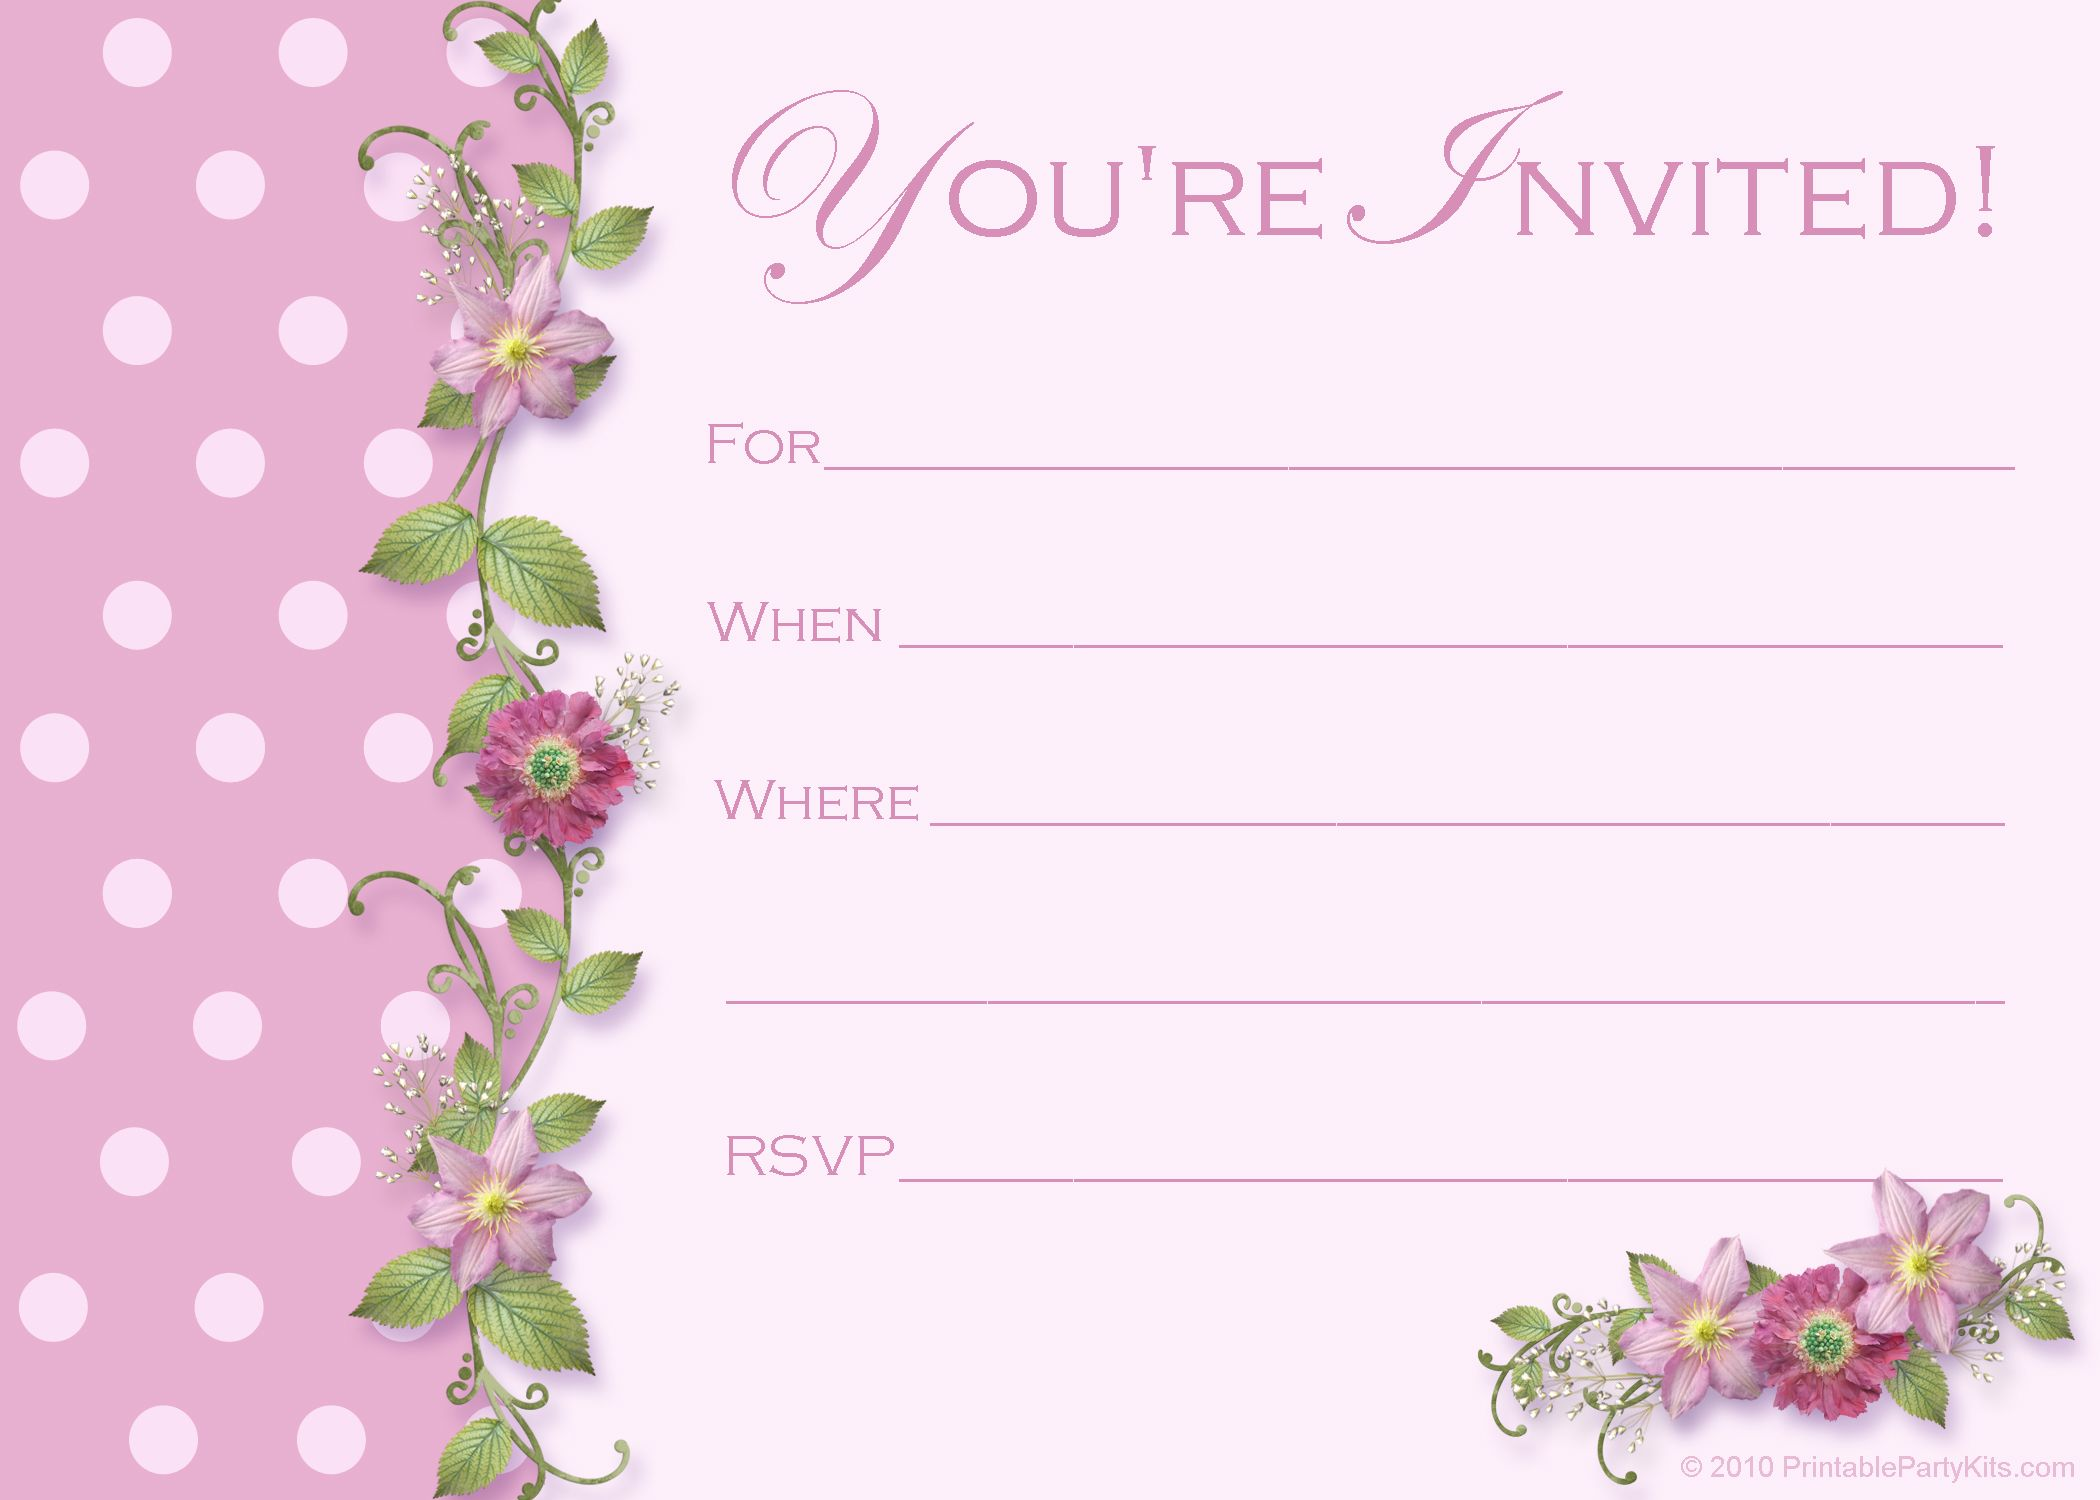 17 Best ideas about Free Birthday Invitation Templates on – Birthday Invitation Template Word